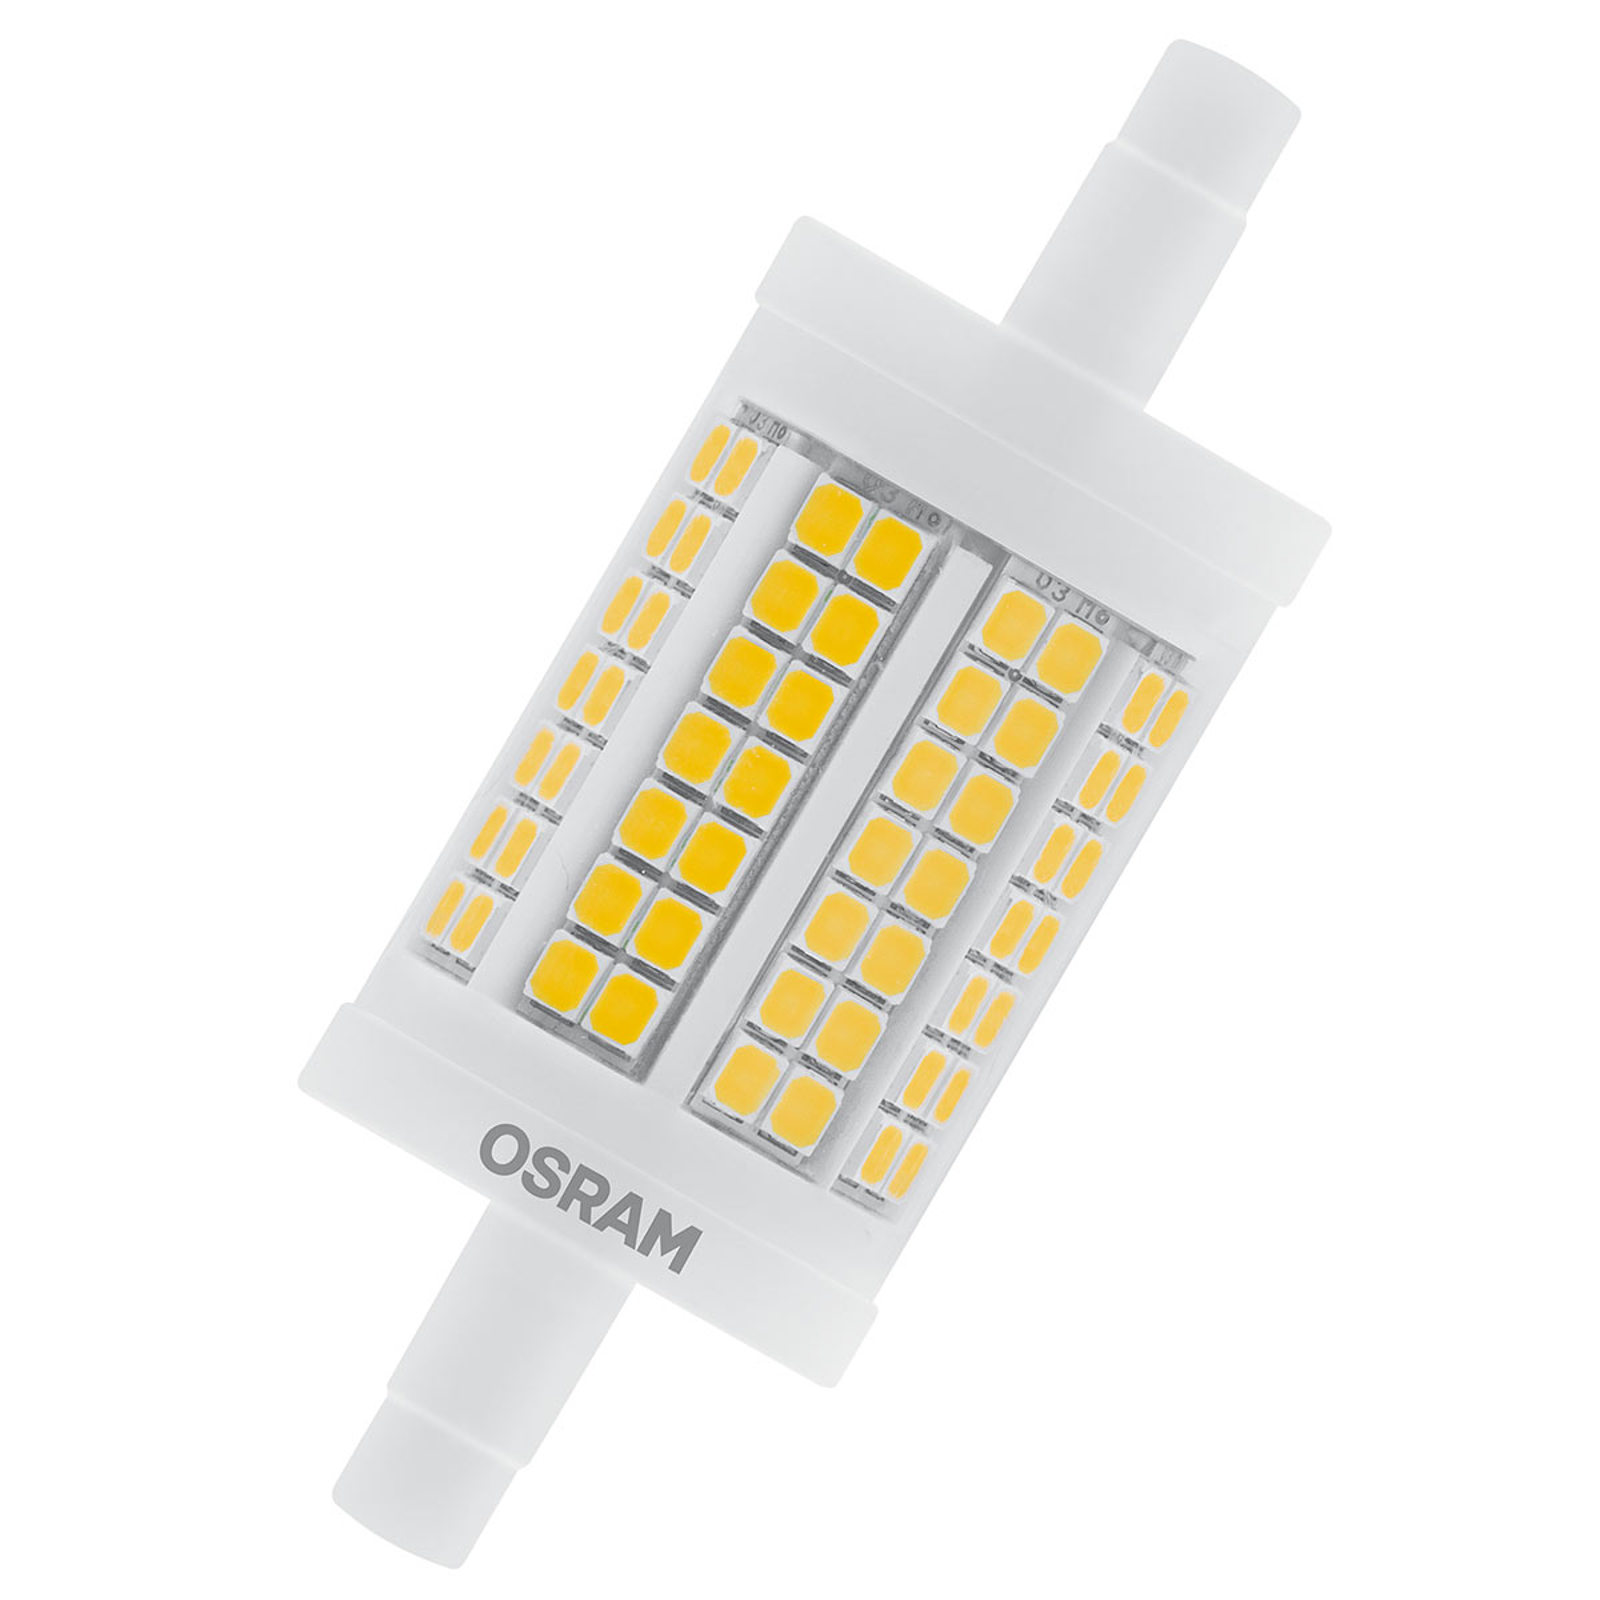 Led R7s Dimmbar Osram Led-stablampe R7s 11,5w 7,8cm 827 Dimmbar | Lampenwelt.at